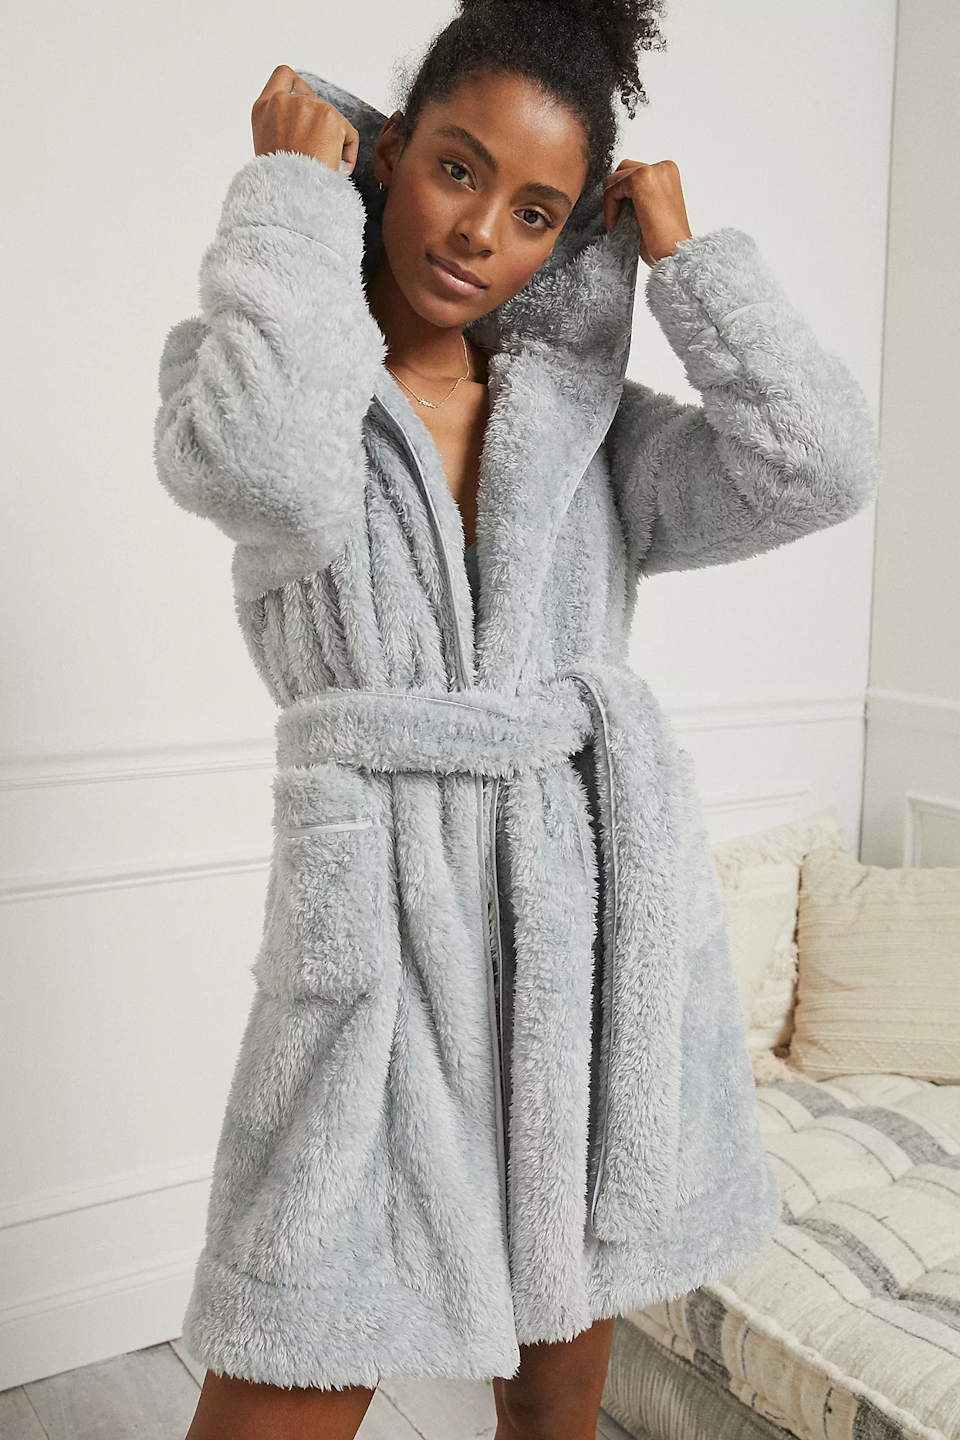 """<h3>Eri + Ali Sherpa Hooded Robe</h3><br>This highly rated sherpa robe is not only on super sale, but is getting rave reviews due to its super soft and cozy nature. <br><br><strong>Eri + Ali</strong> Hooded Sherpa Robe, $, available at <a href=""""https://go.skimresources.com/?id=30283X879131&url=https%3A%2F%2Fwww.anthropologie.com%2Fshop%2Fprudence-hooded-sherpa-robe"""" rel=""""nofollow noopener"""" target=""""_blank"""" data-ylk=""""slk:Anthropologie"""" class=""""link rapid-noclick-resp"""">Anthropologie</a>"""